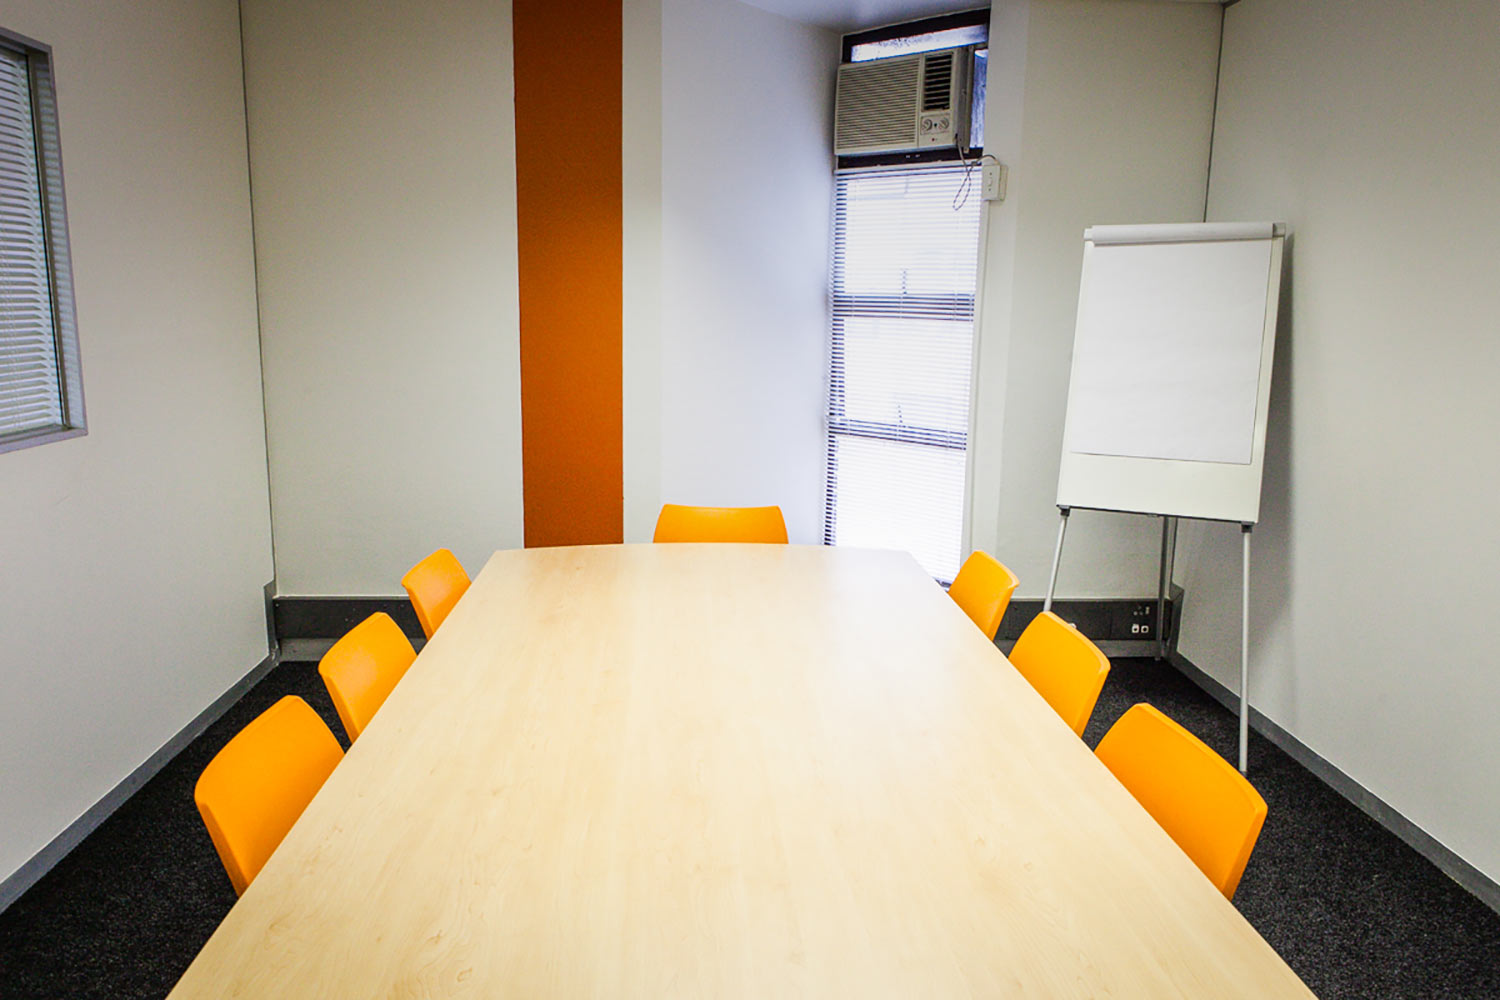 An XtraSpace Flexi Office meeting room with a wooden table and modern plastic orange chairs and airconditioning.